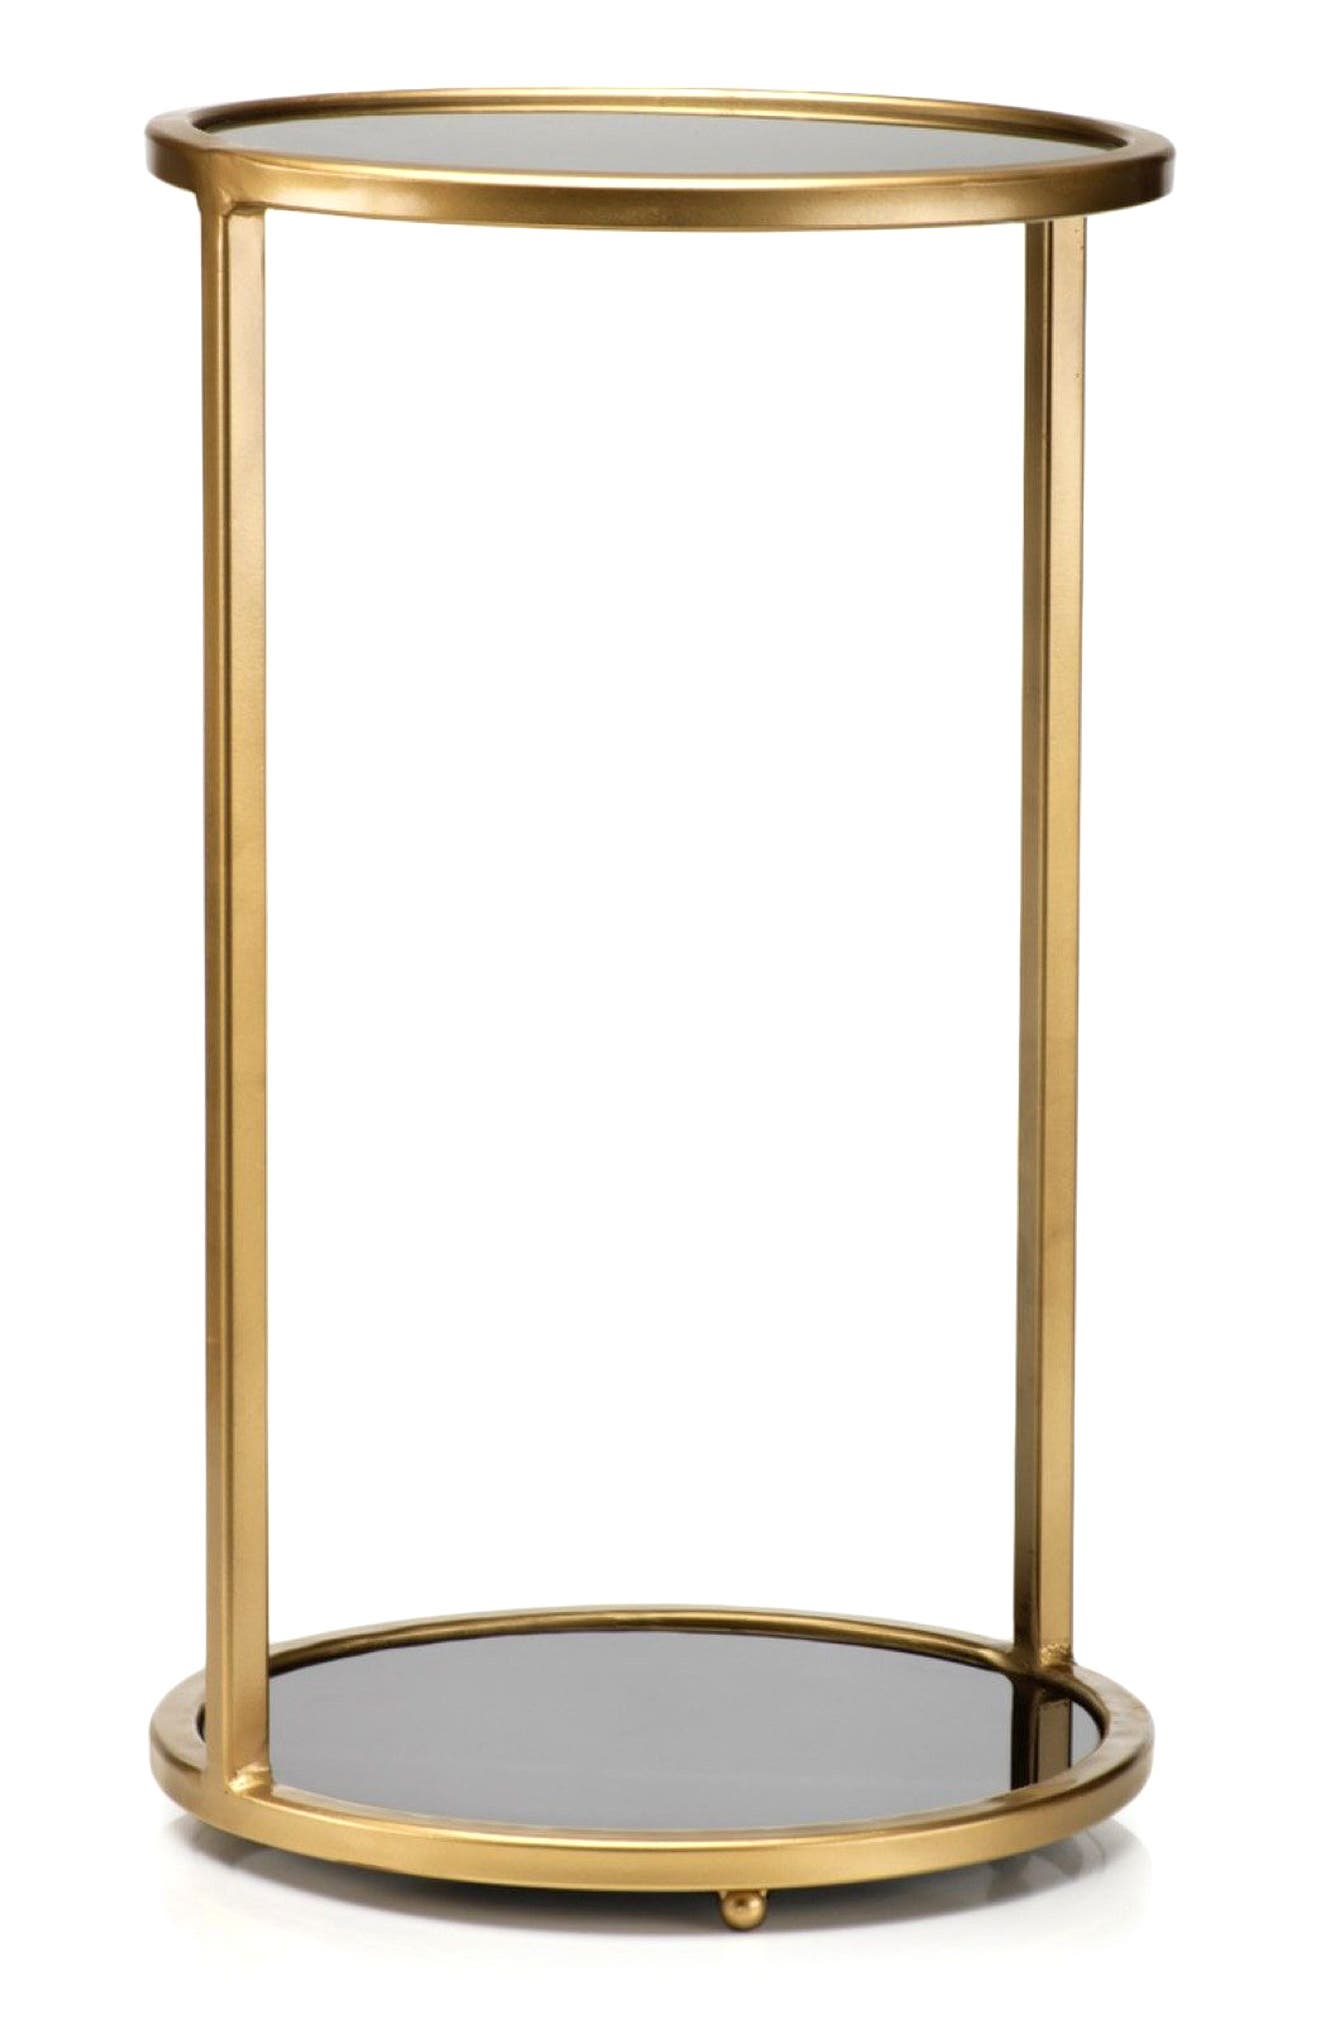 Zodax Modena Side Table